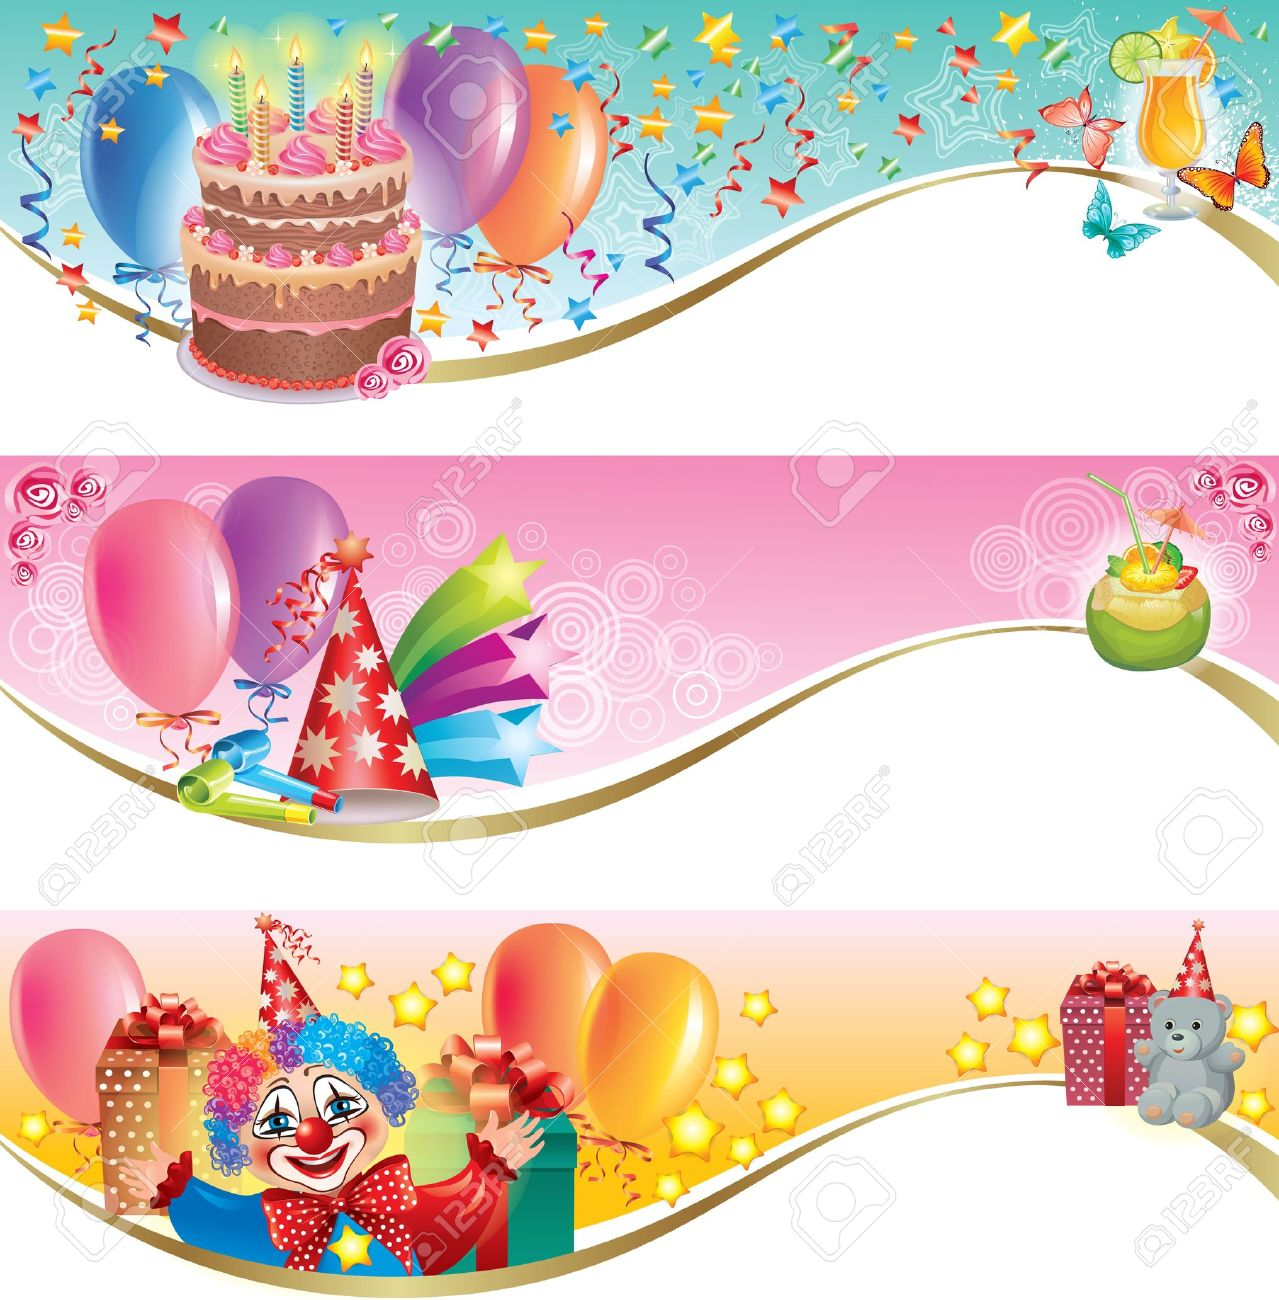 decorative birthday bannerscontains transparent objects royalty